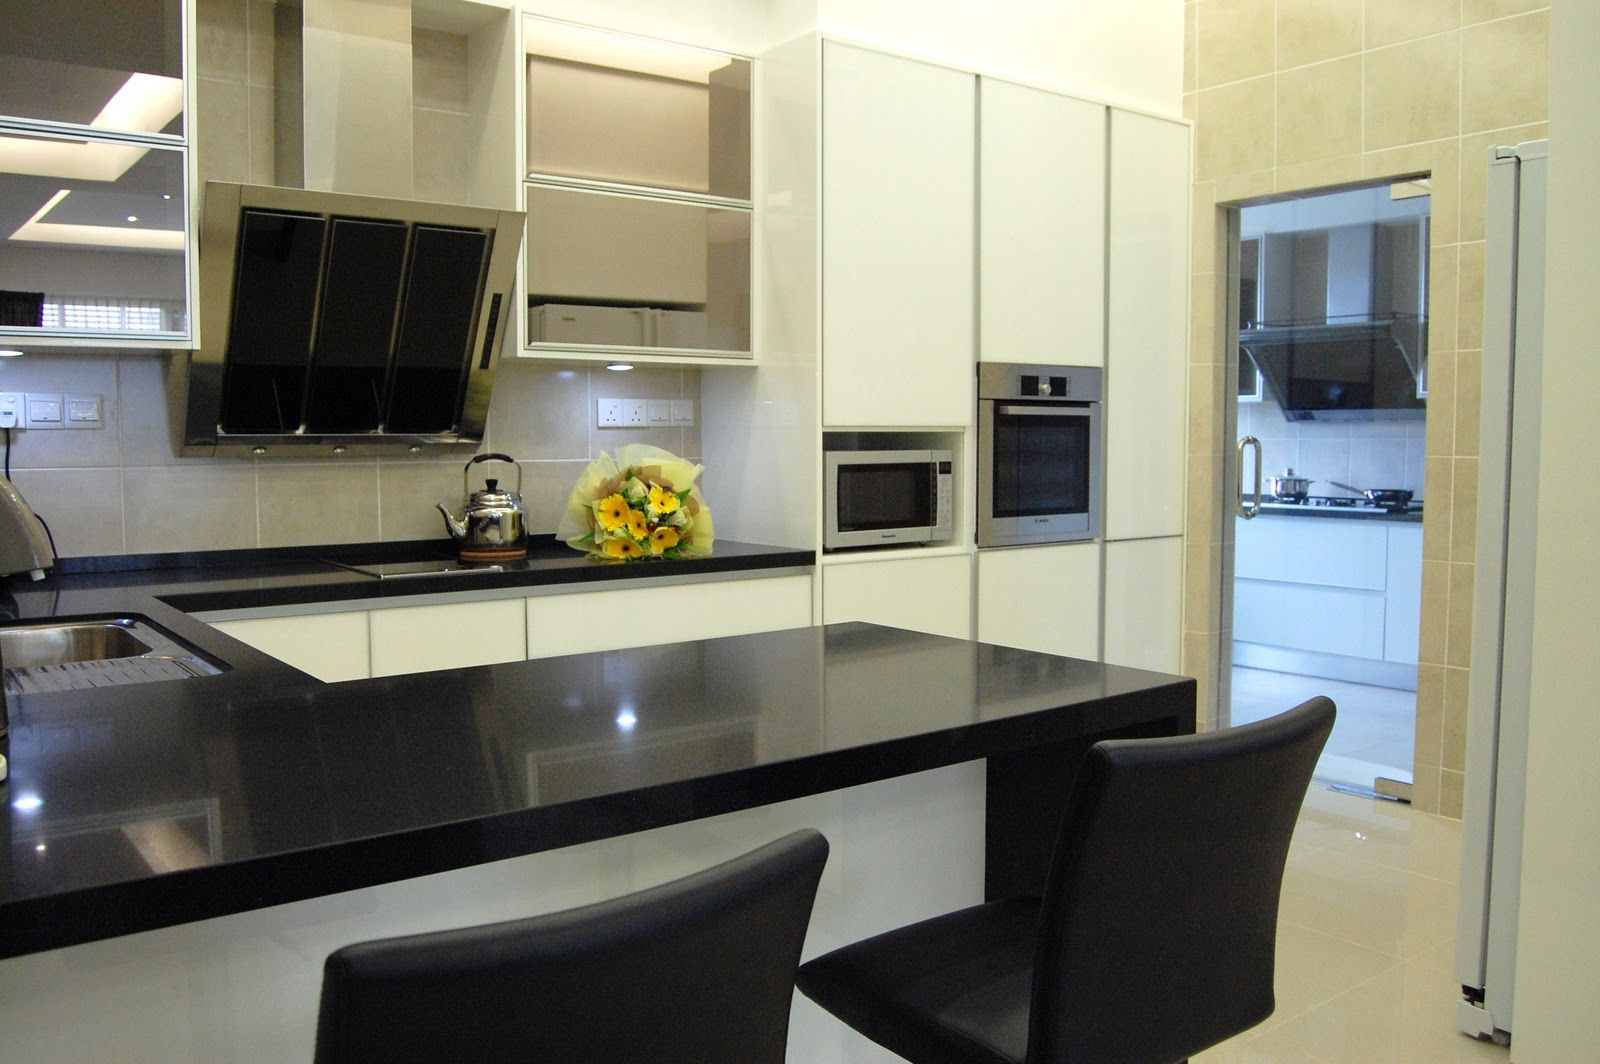 meridian design kitchen cabinet and interior design blog malaysia 1600x1064 - Malaysia Interior Design Blog